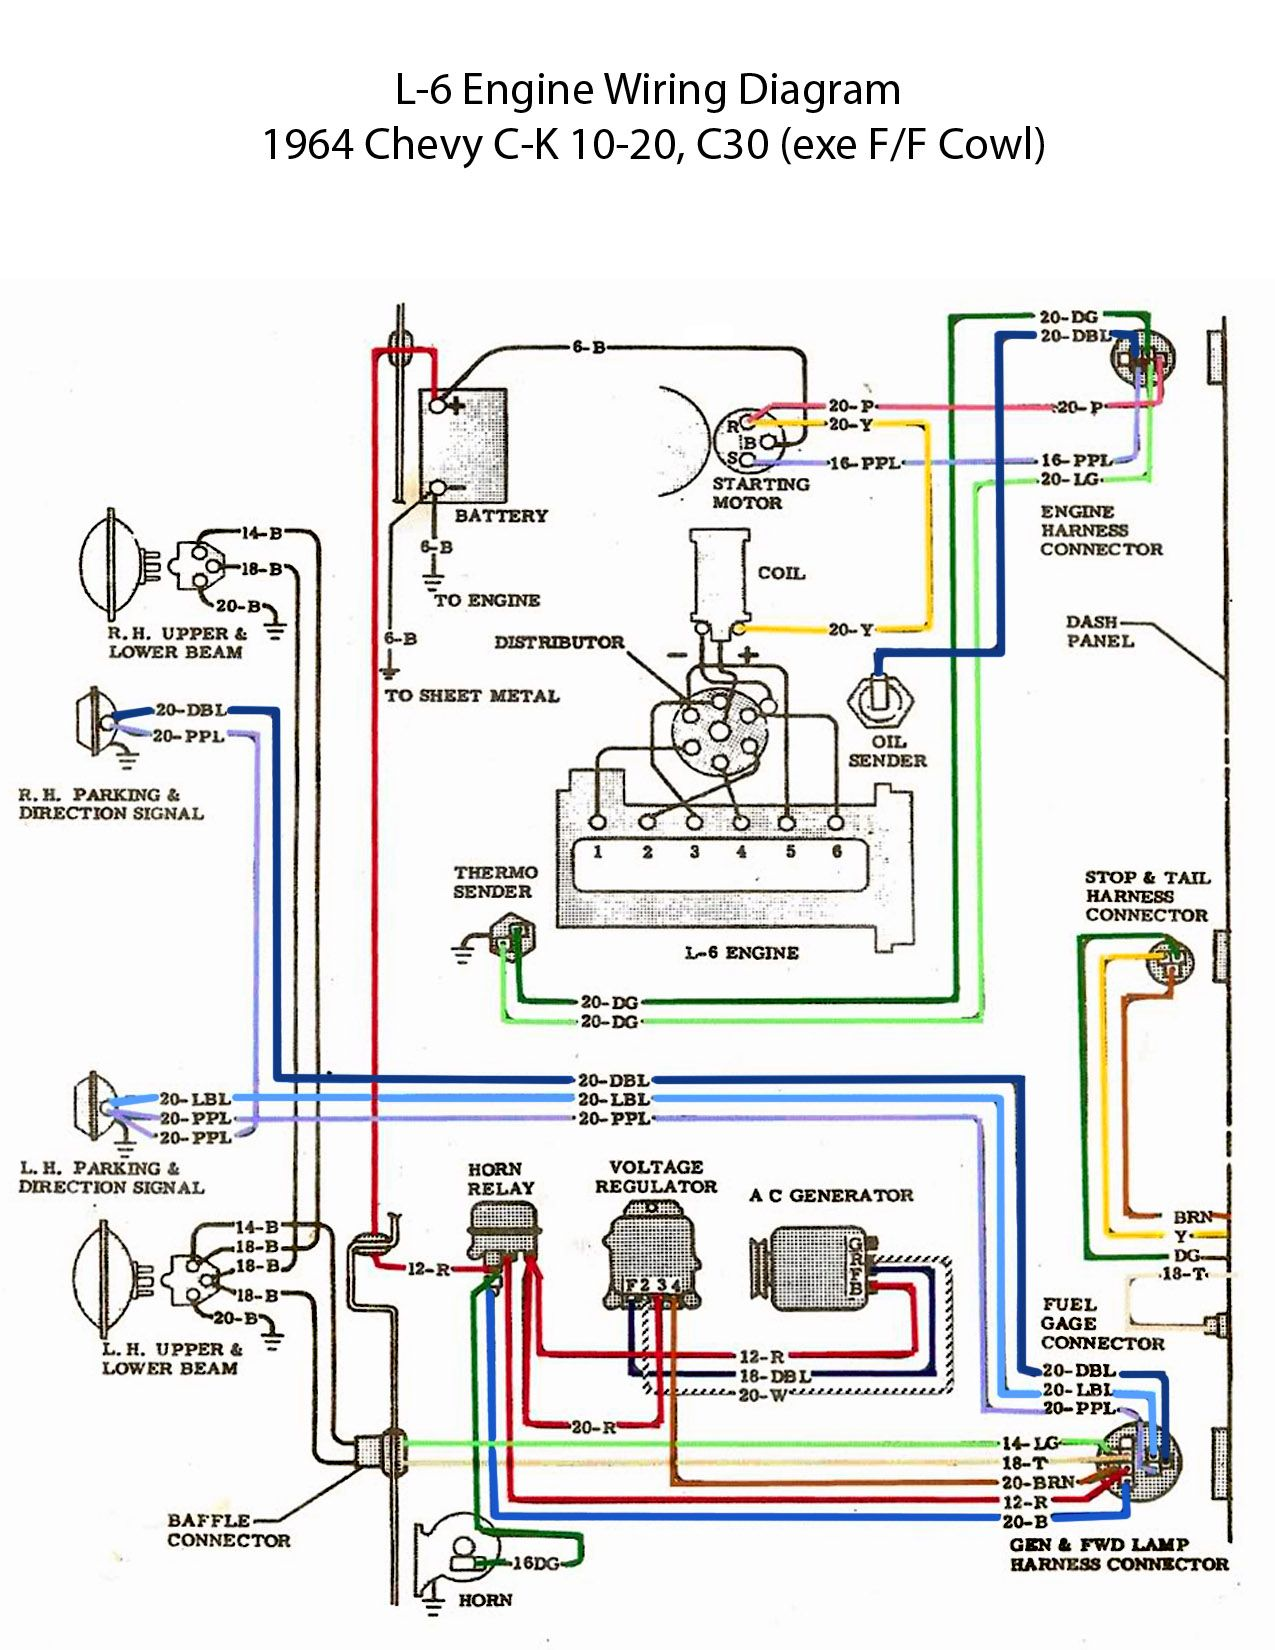 hight resolution of gm alt wiring diagram 1989 3 wire alternator diagram gm alternator rh banyan palace com chevy